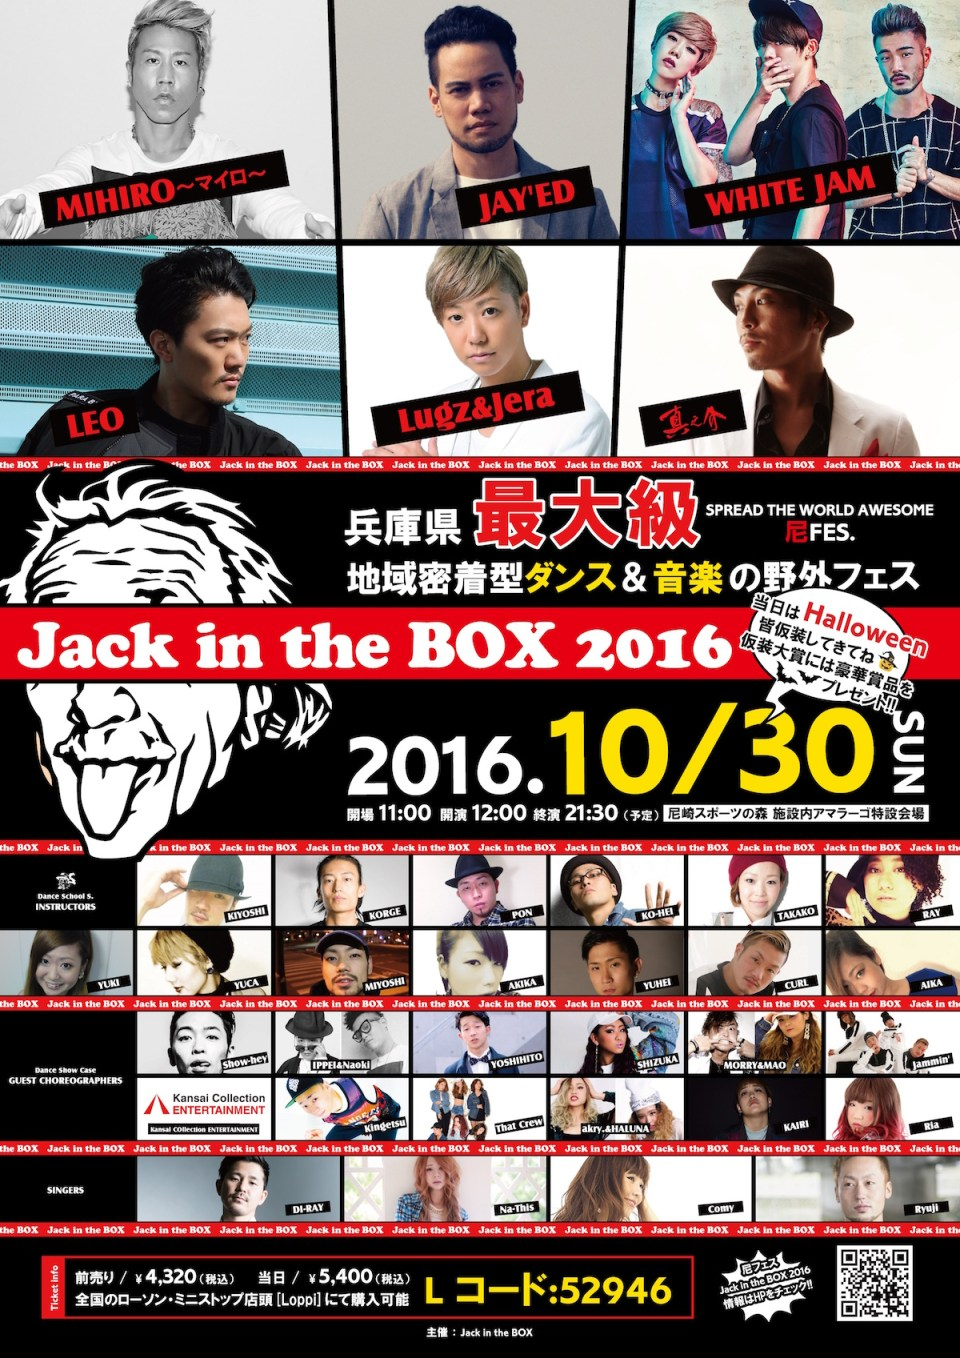 尼FES. Jack in the BOX 2016 ポスター